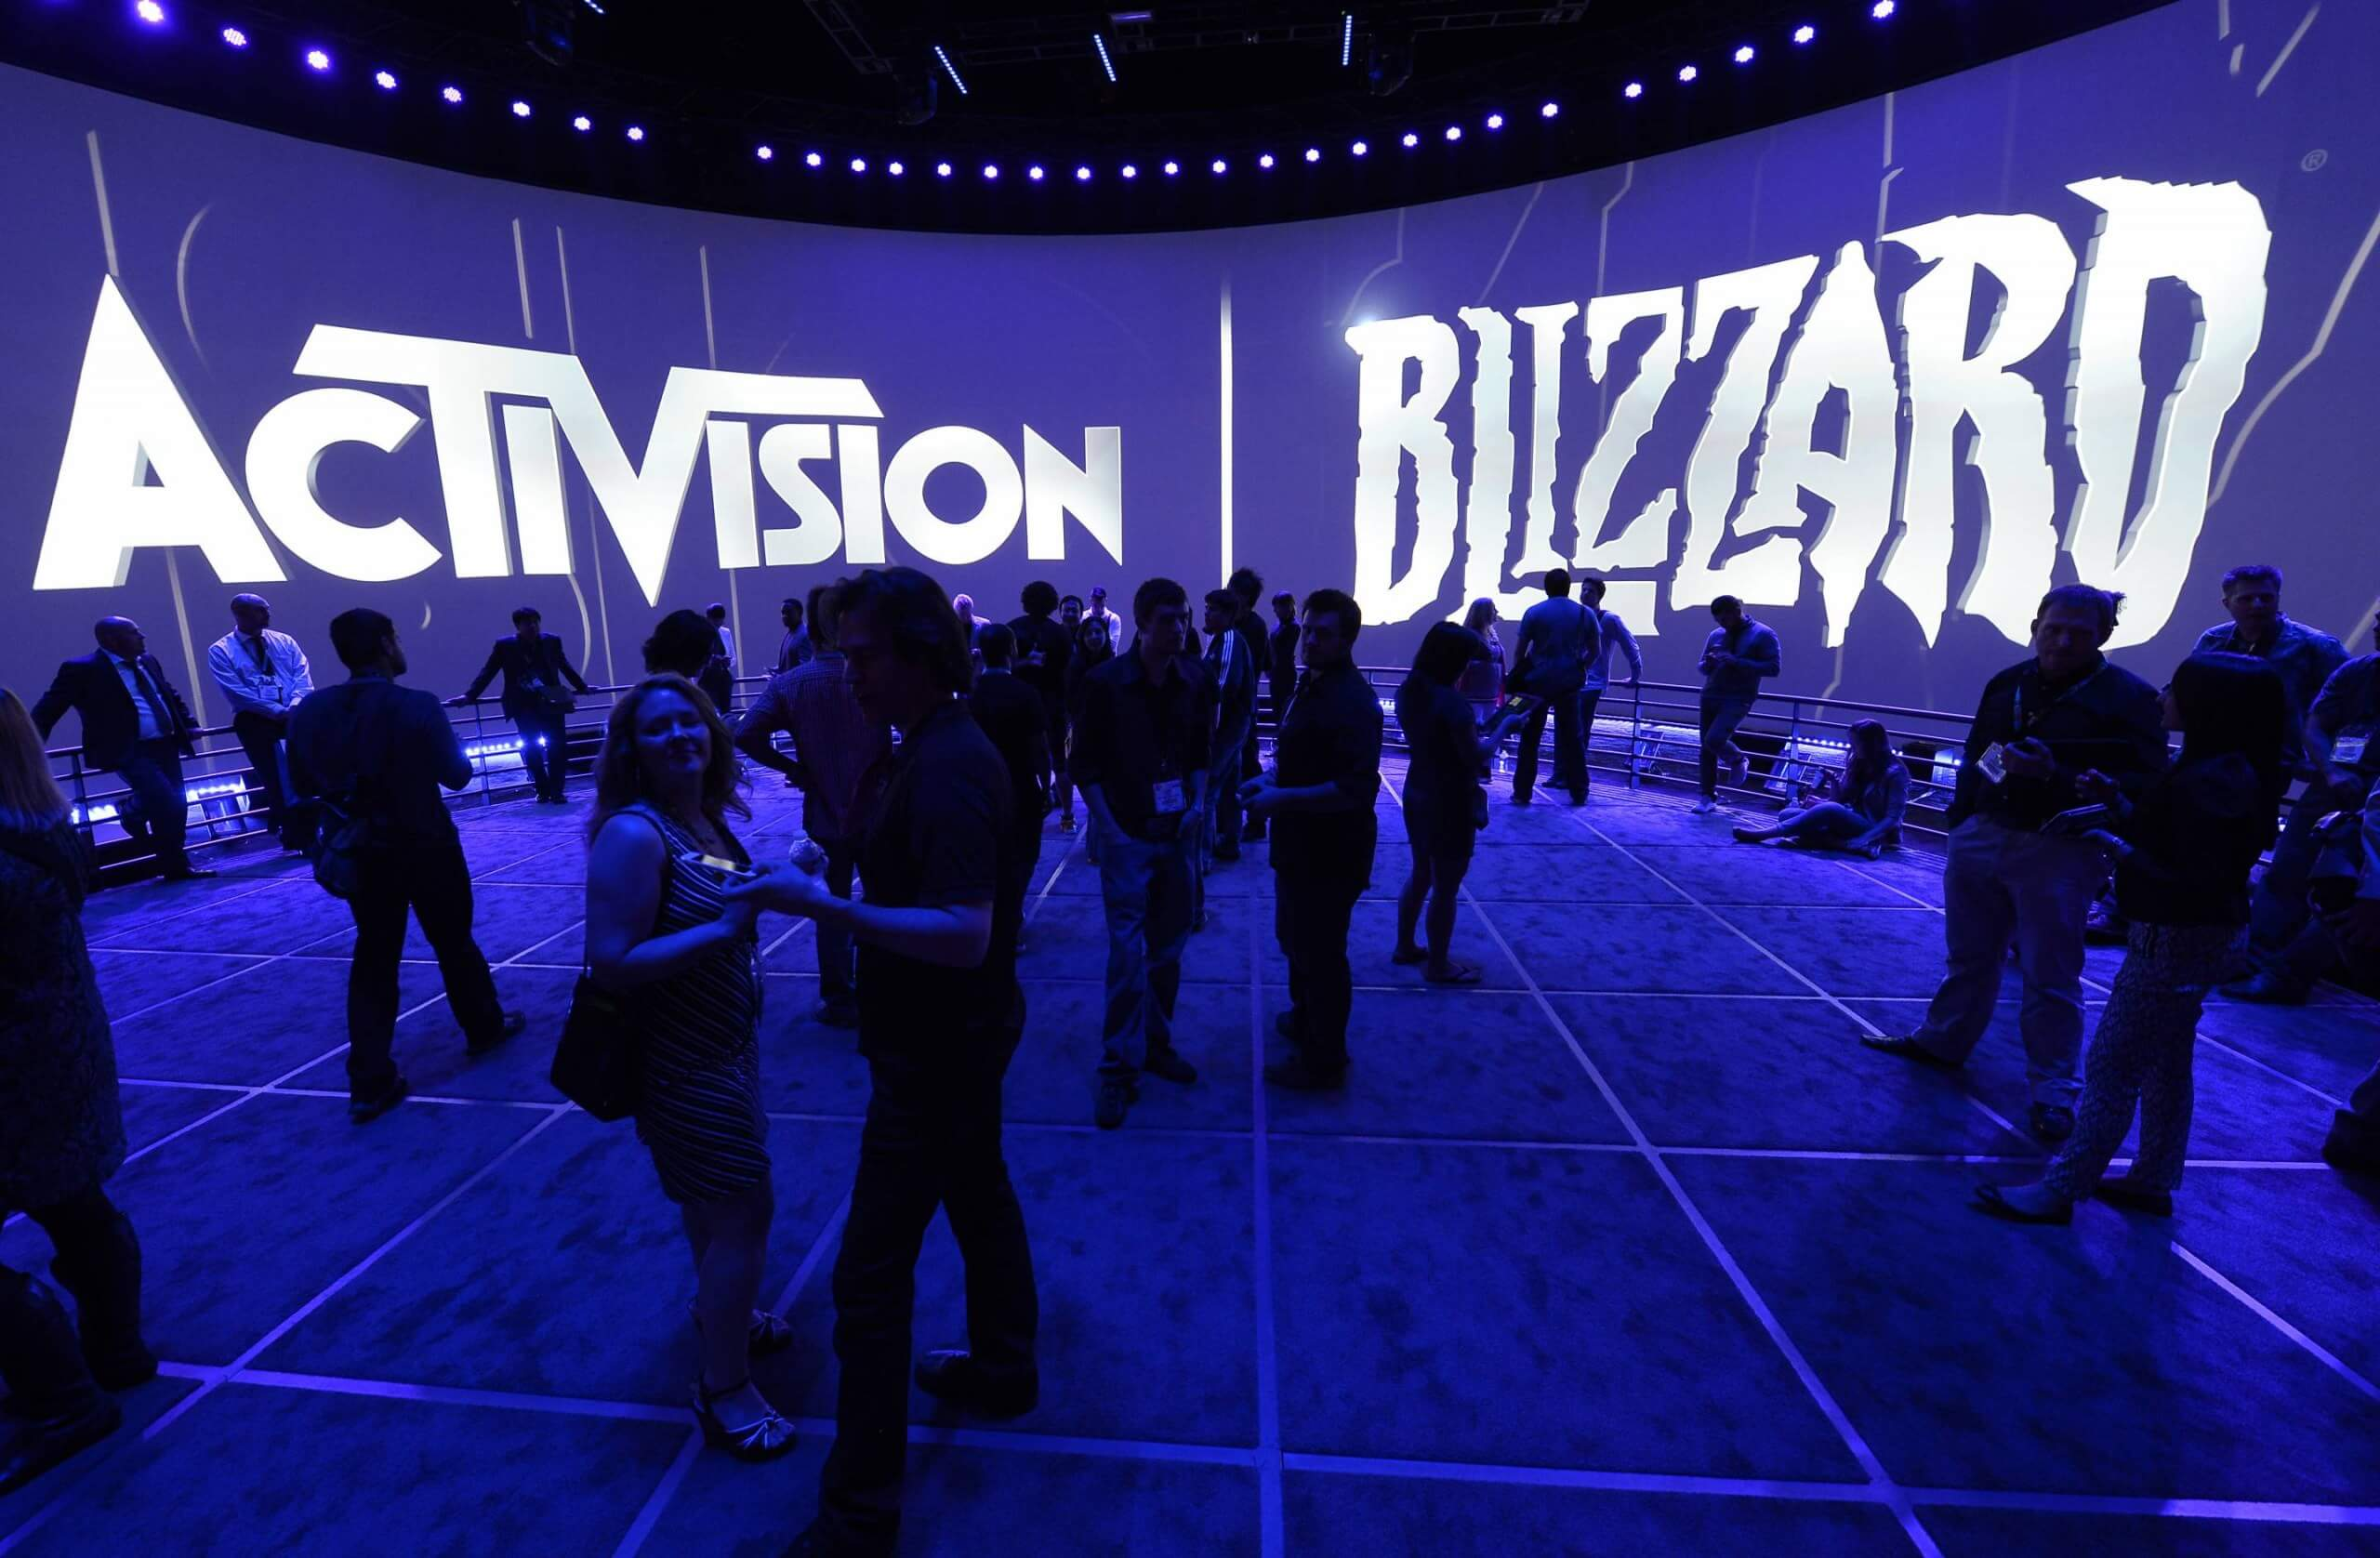 Activision Blizzard worried that downsizing will disrupt